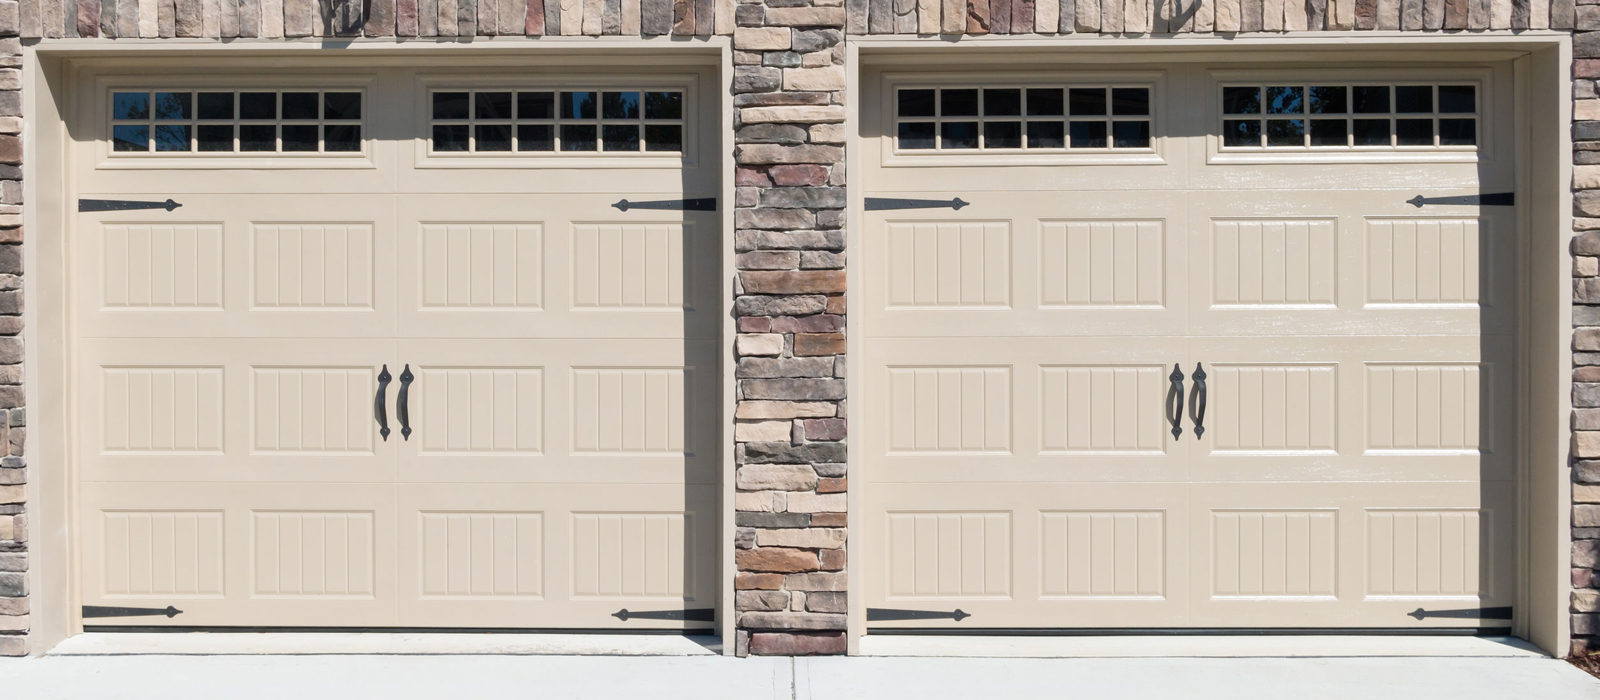 repair free seattle doors track how by garage install to yourself within regard installationtheydesign door tread with